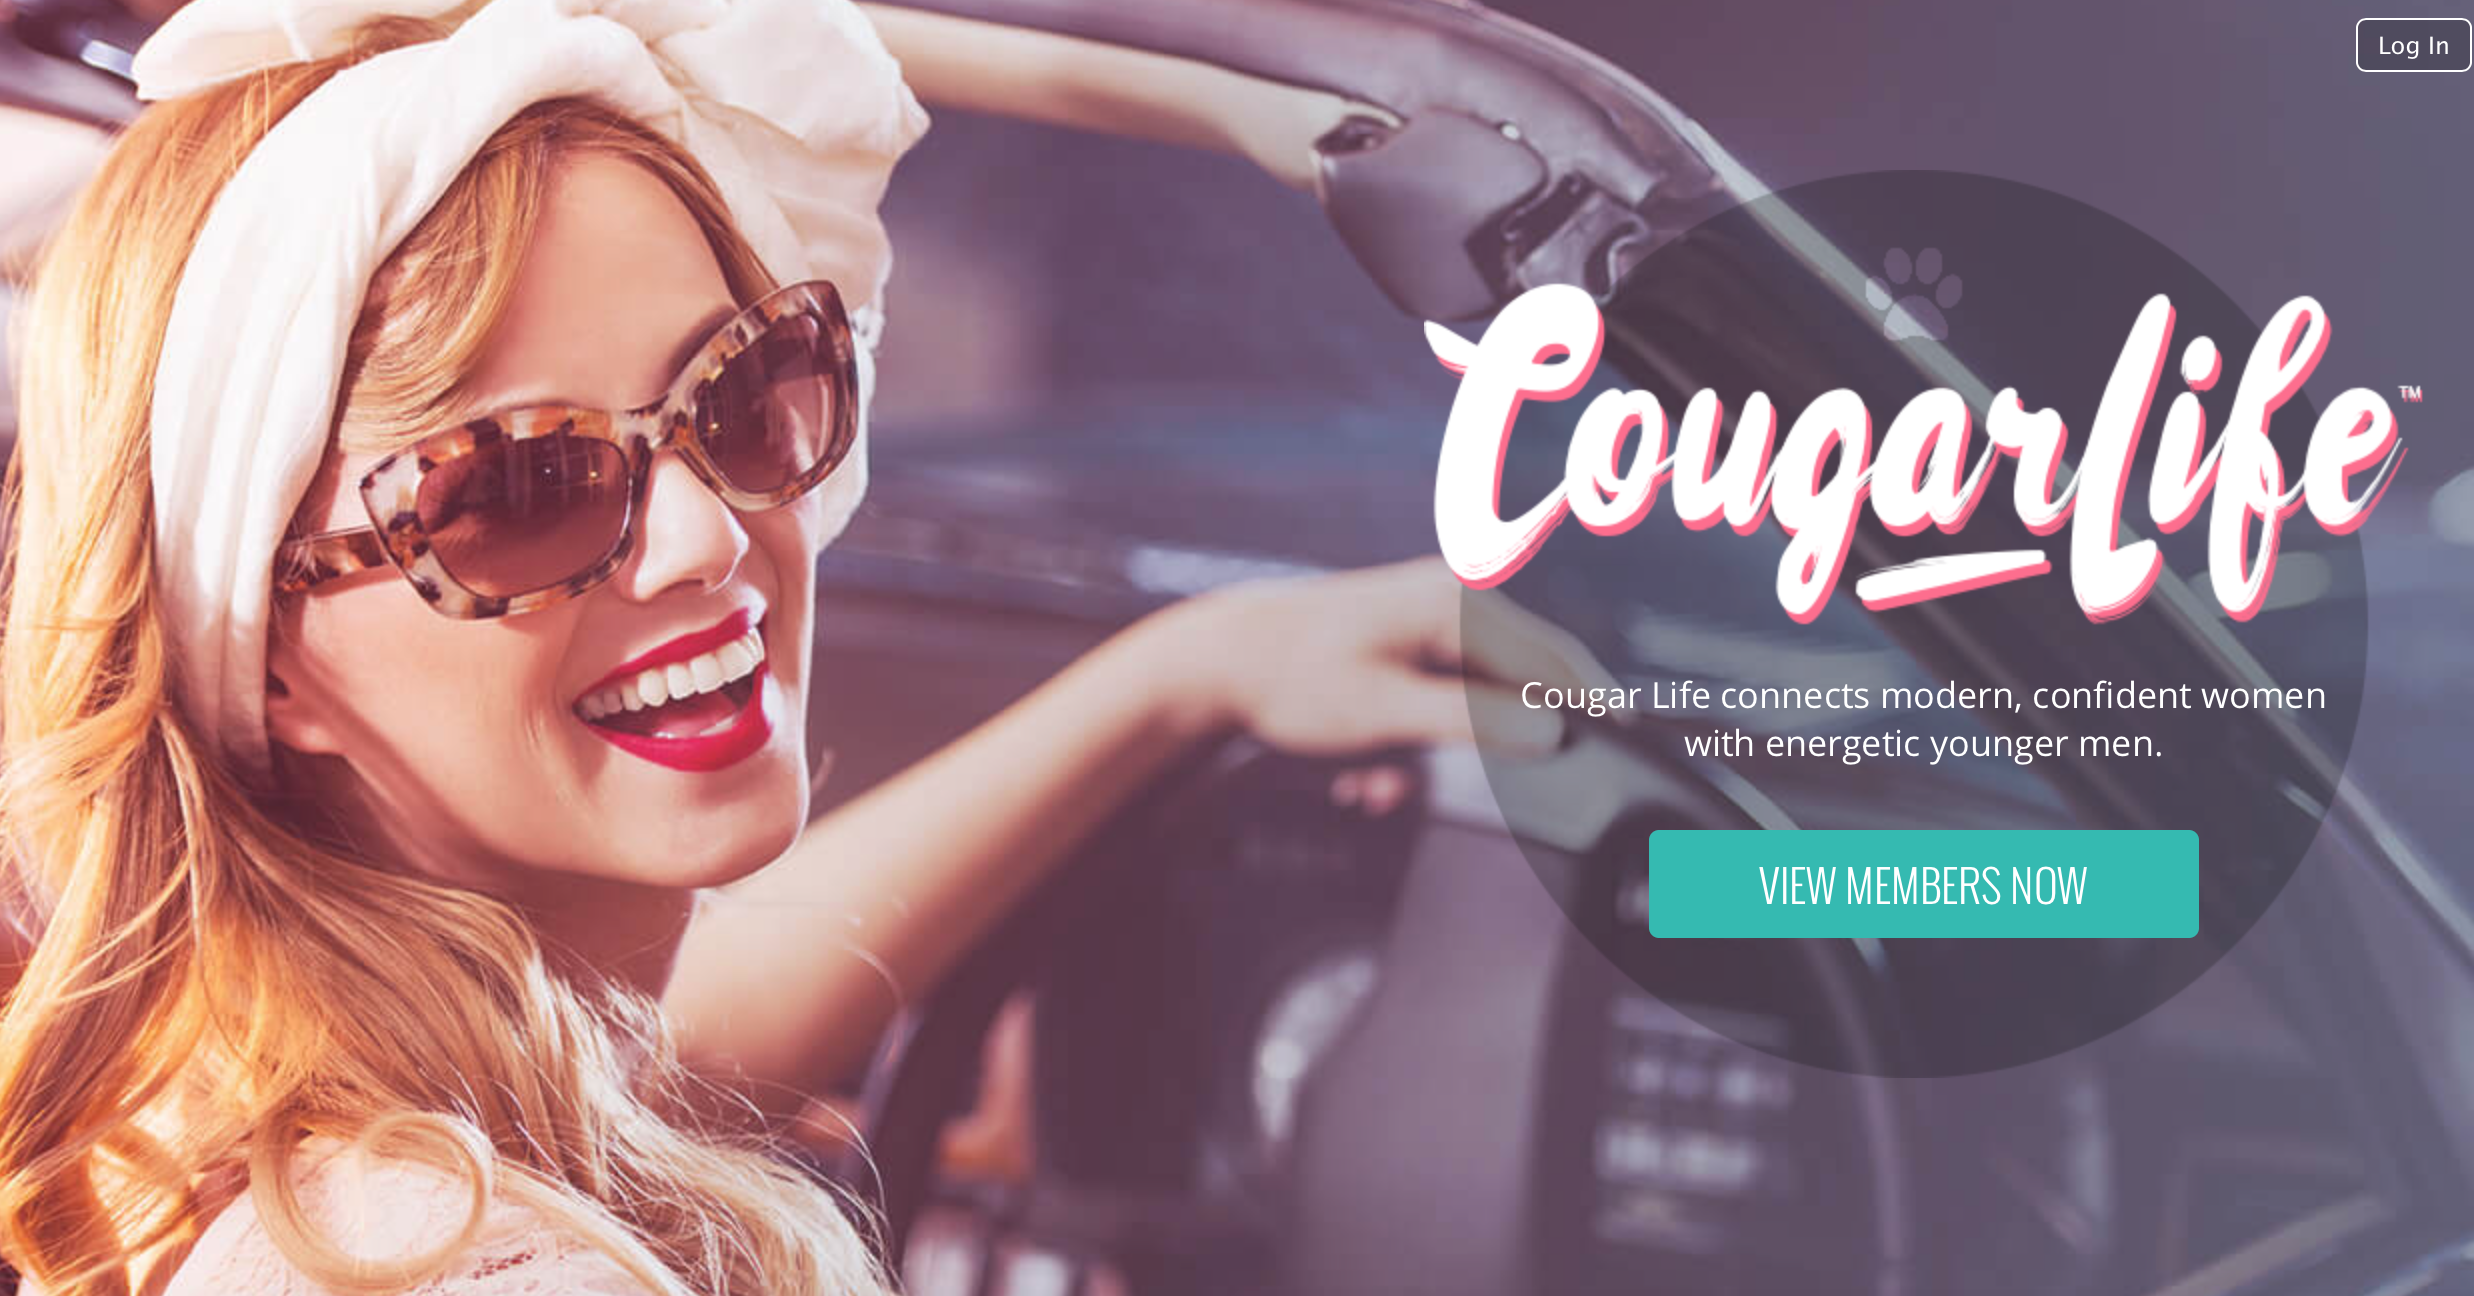 oxbow cougars dating site Enjoy free online dating browse our totally free online dating website for profiles of single men and single women who are looking for.